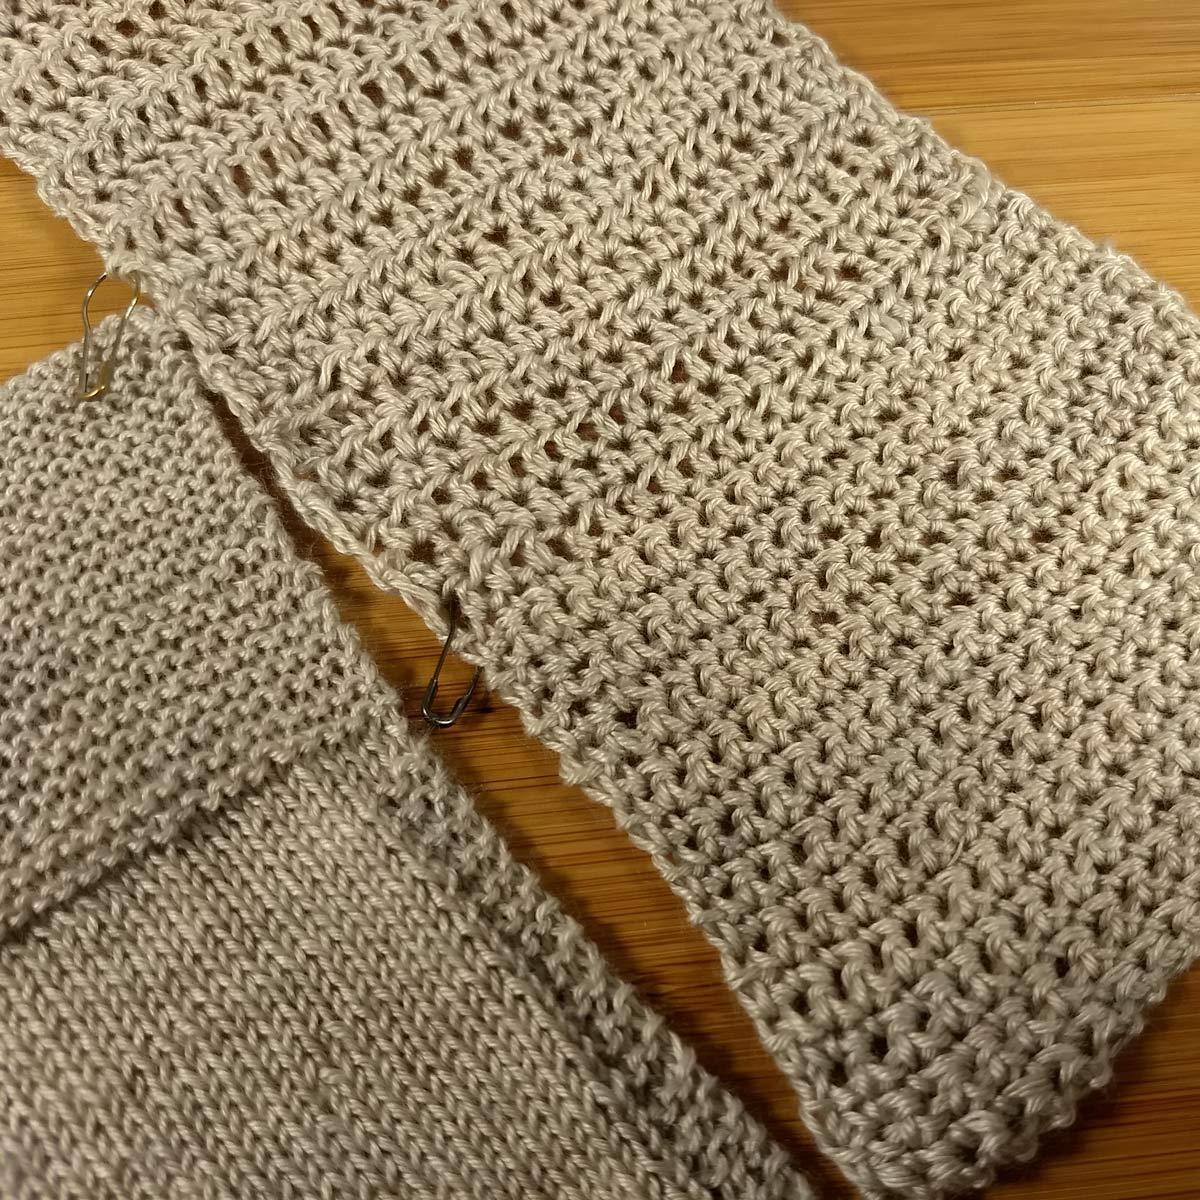 Knit and crochet swatches of Milky Way in simple stitches: stockinette, garter stitch, single, half-double, and double crochet.